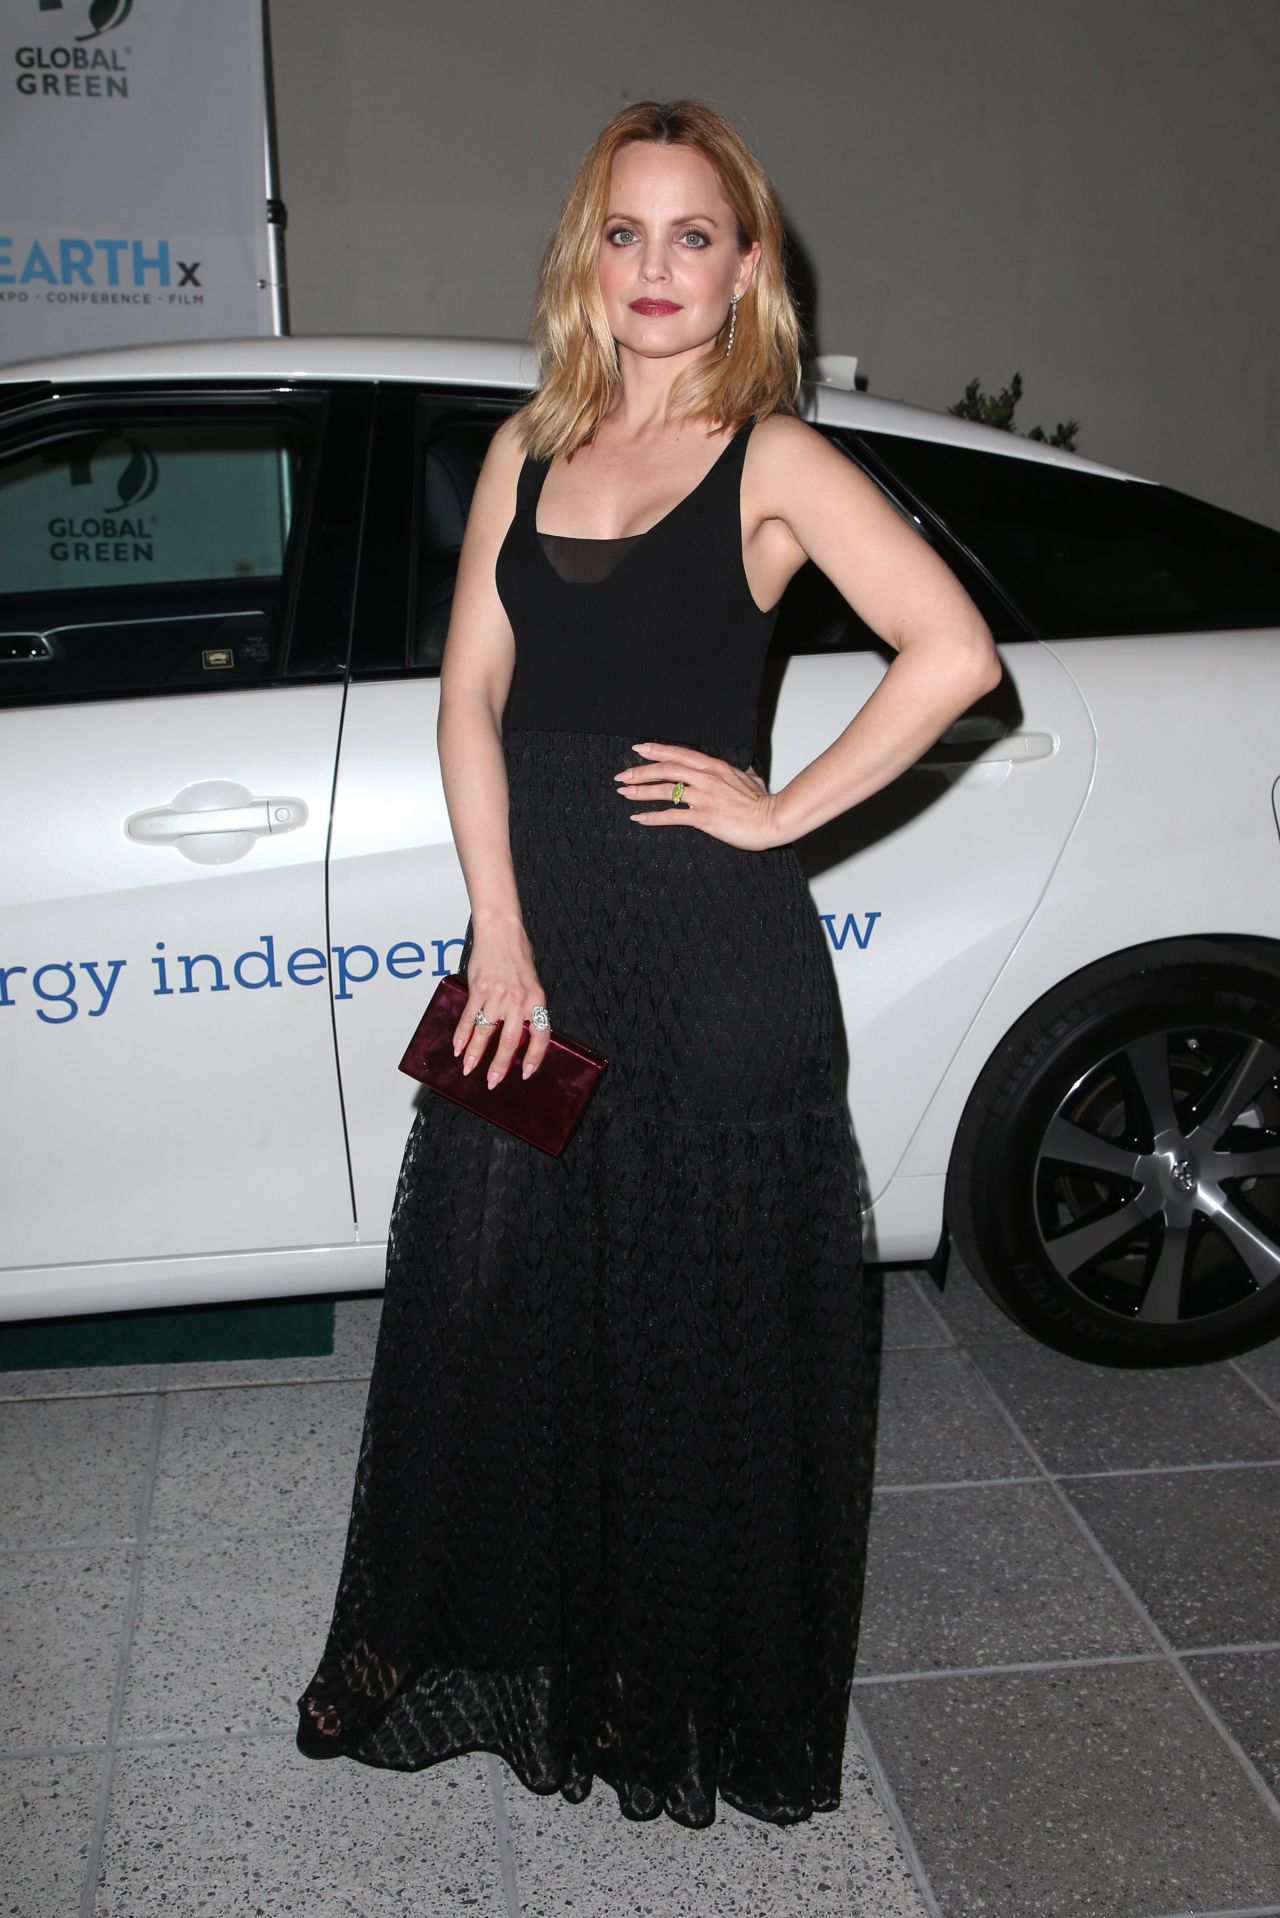 http://celebmafia.com/wp-content/uploads/2018/03/mena-suvari-2018-academy-awards-global-green-pre-oscars-party-in-la-6.jpg